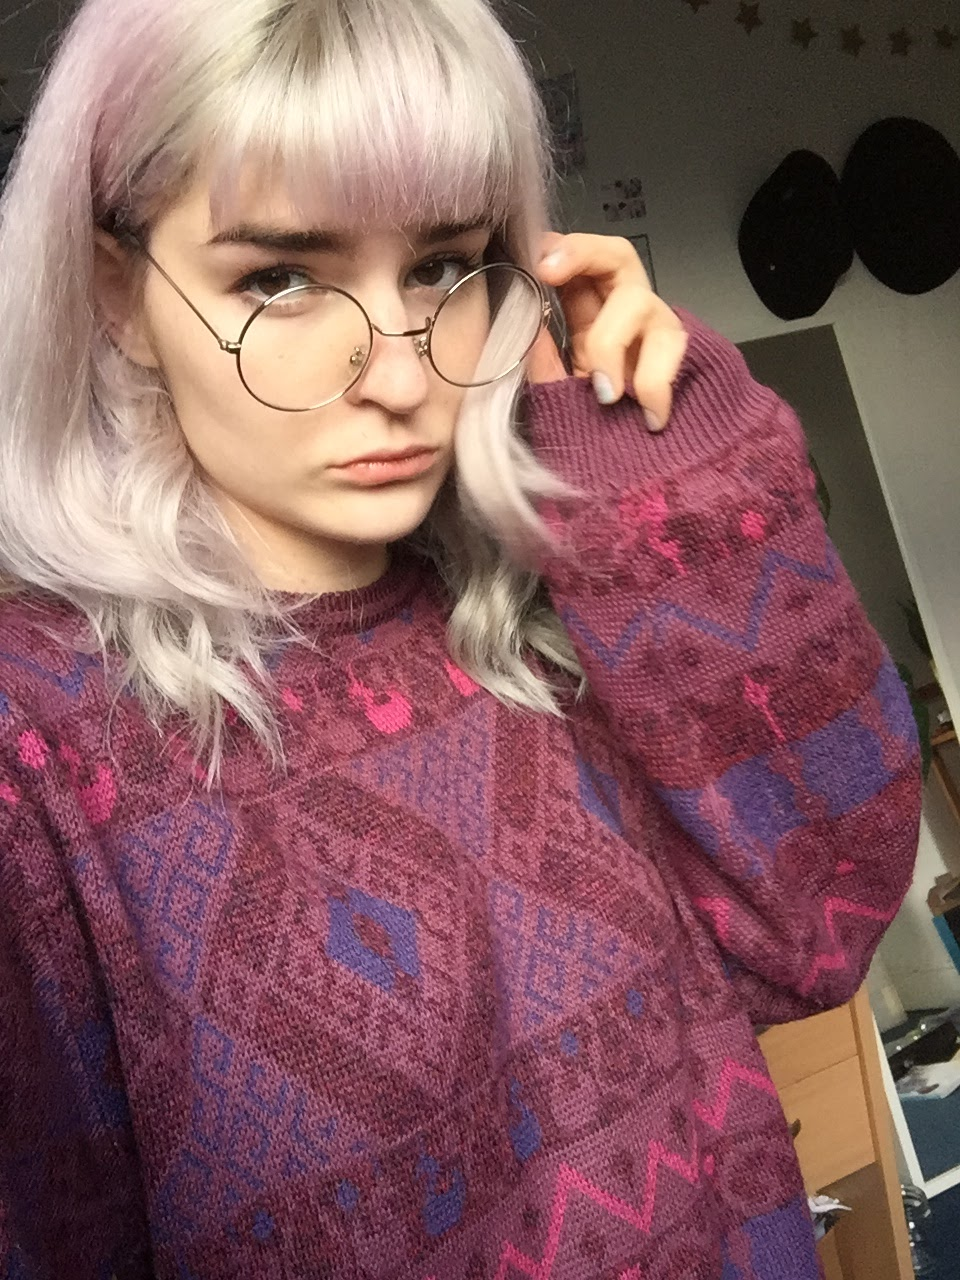 lavender haired girl in vintage jumper and round glasses